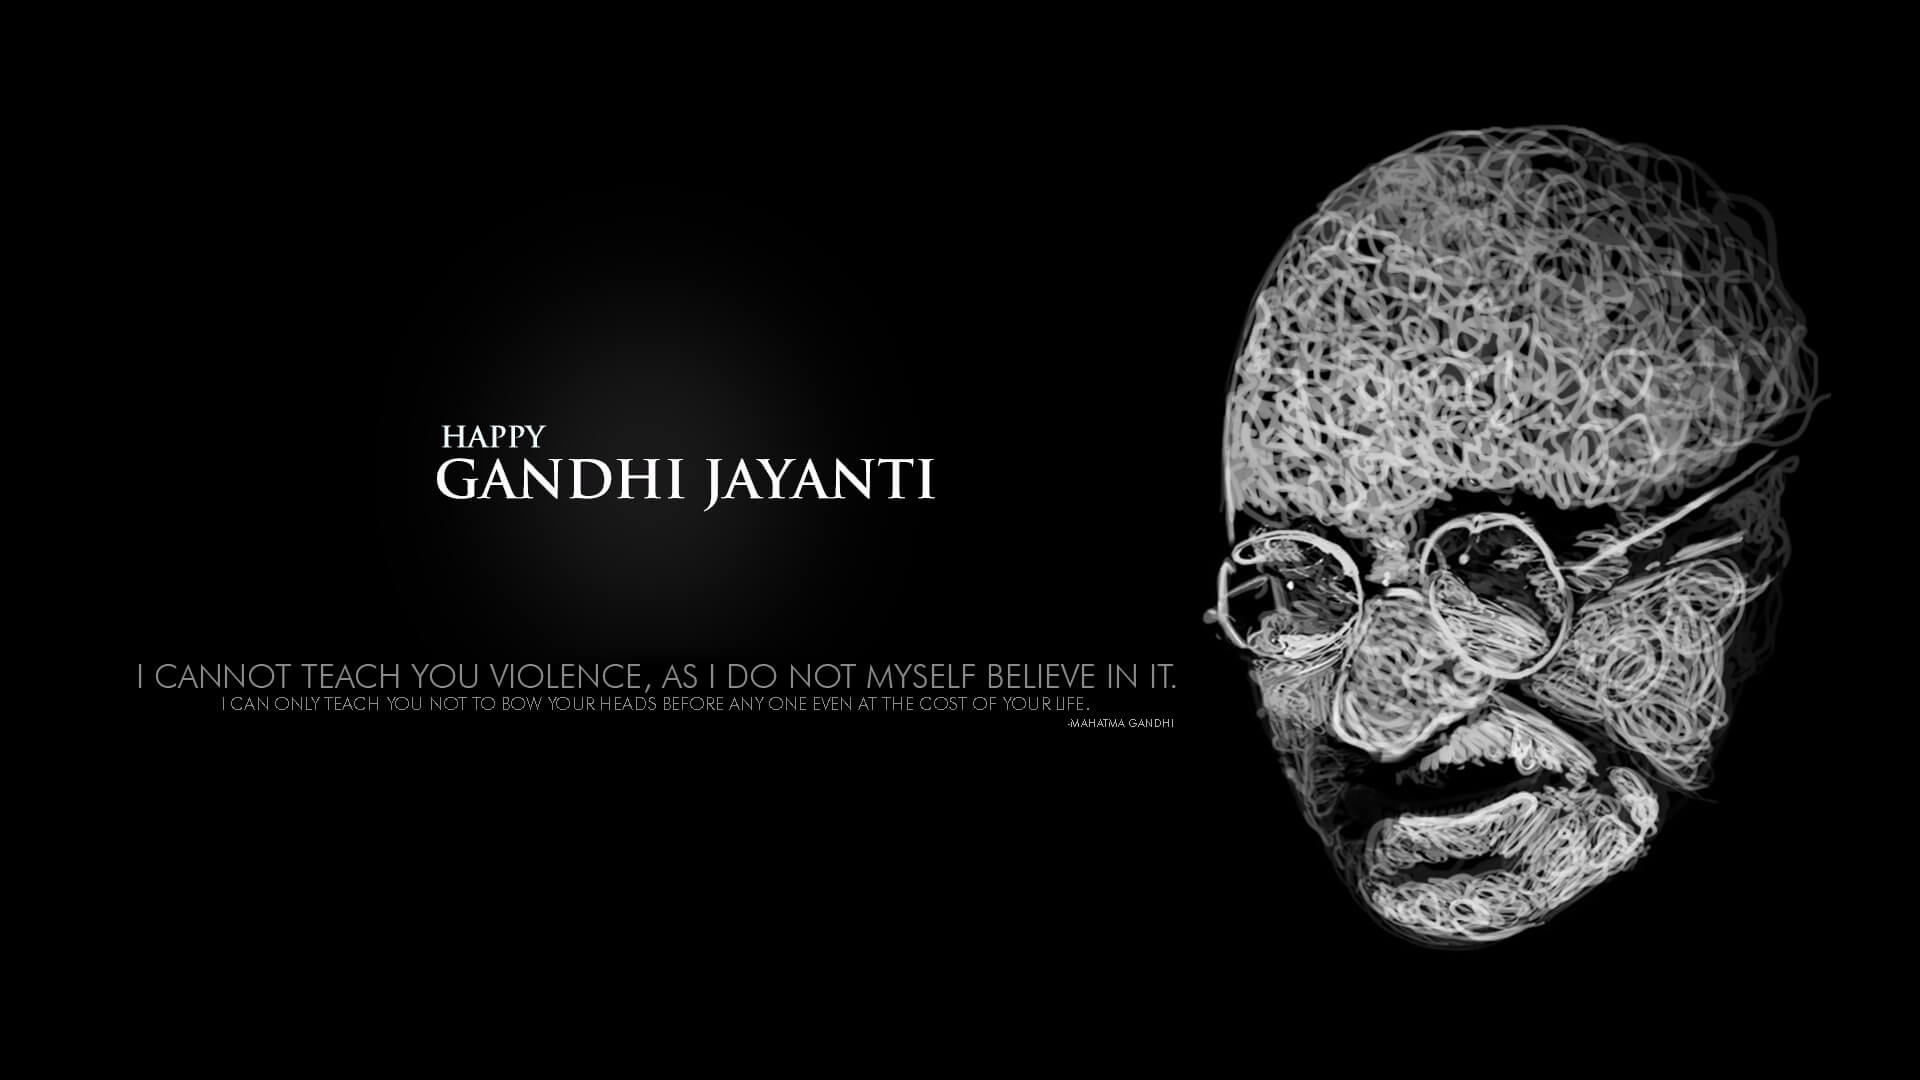 gandhi jayanti october 2 non violence quotes hd pc wallpaper